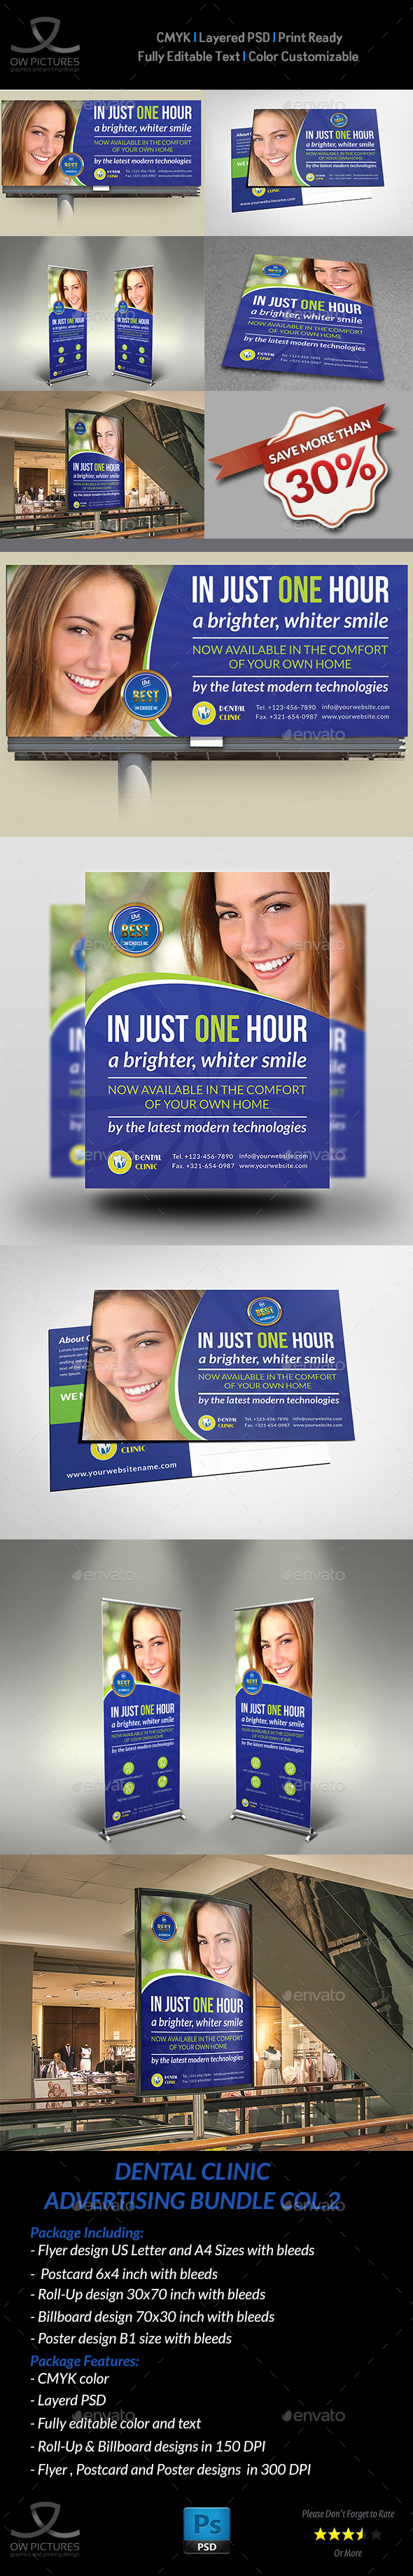 Dental Clinic Advertising Bundle Vol.2 - Signage Print Templates